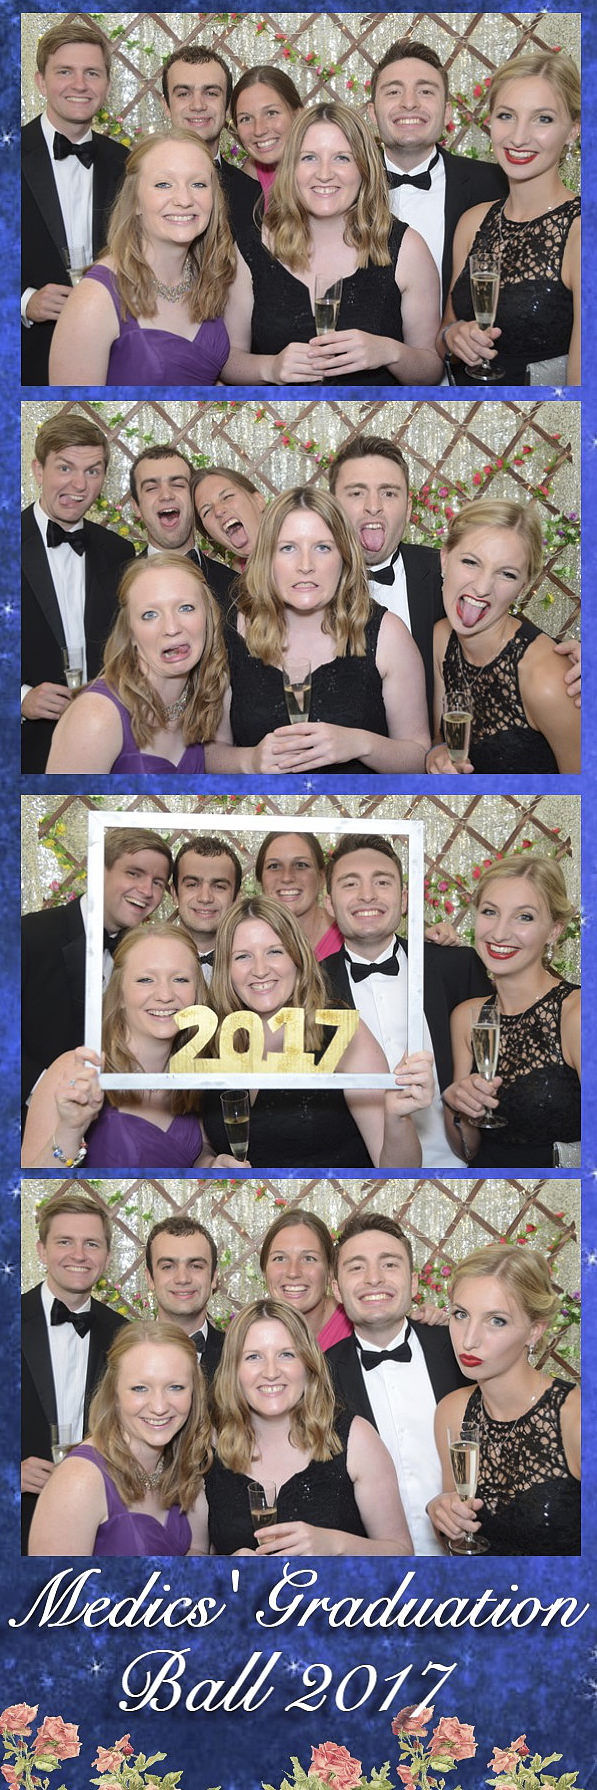 Medics Graduation Ball 2017 Medics Ball 2017 - TheSelfieLab.co.ukDS182118.jpg